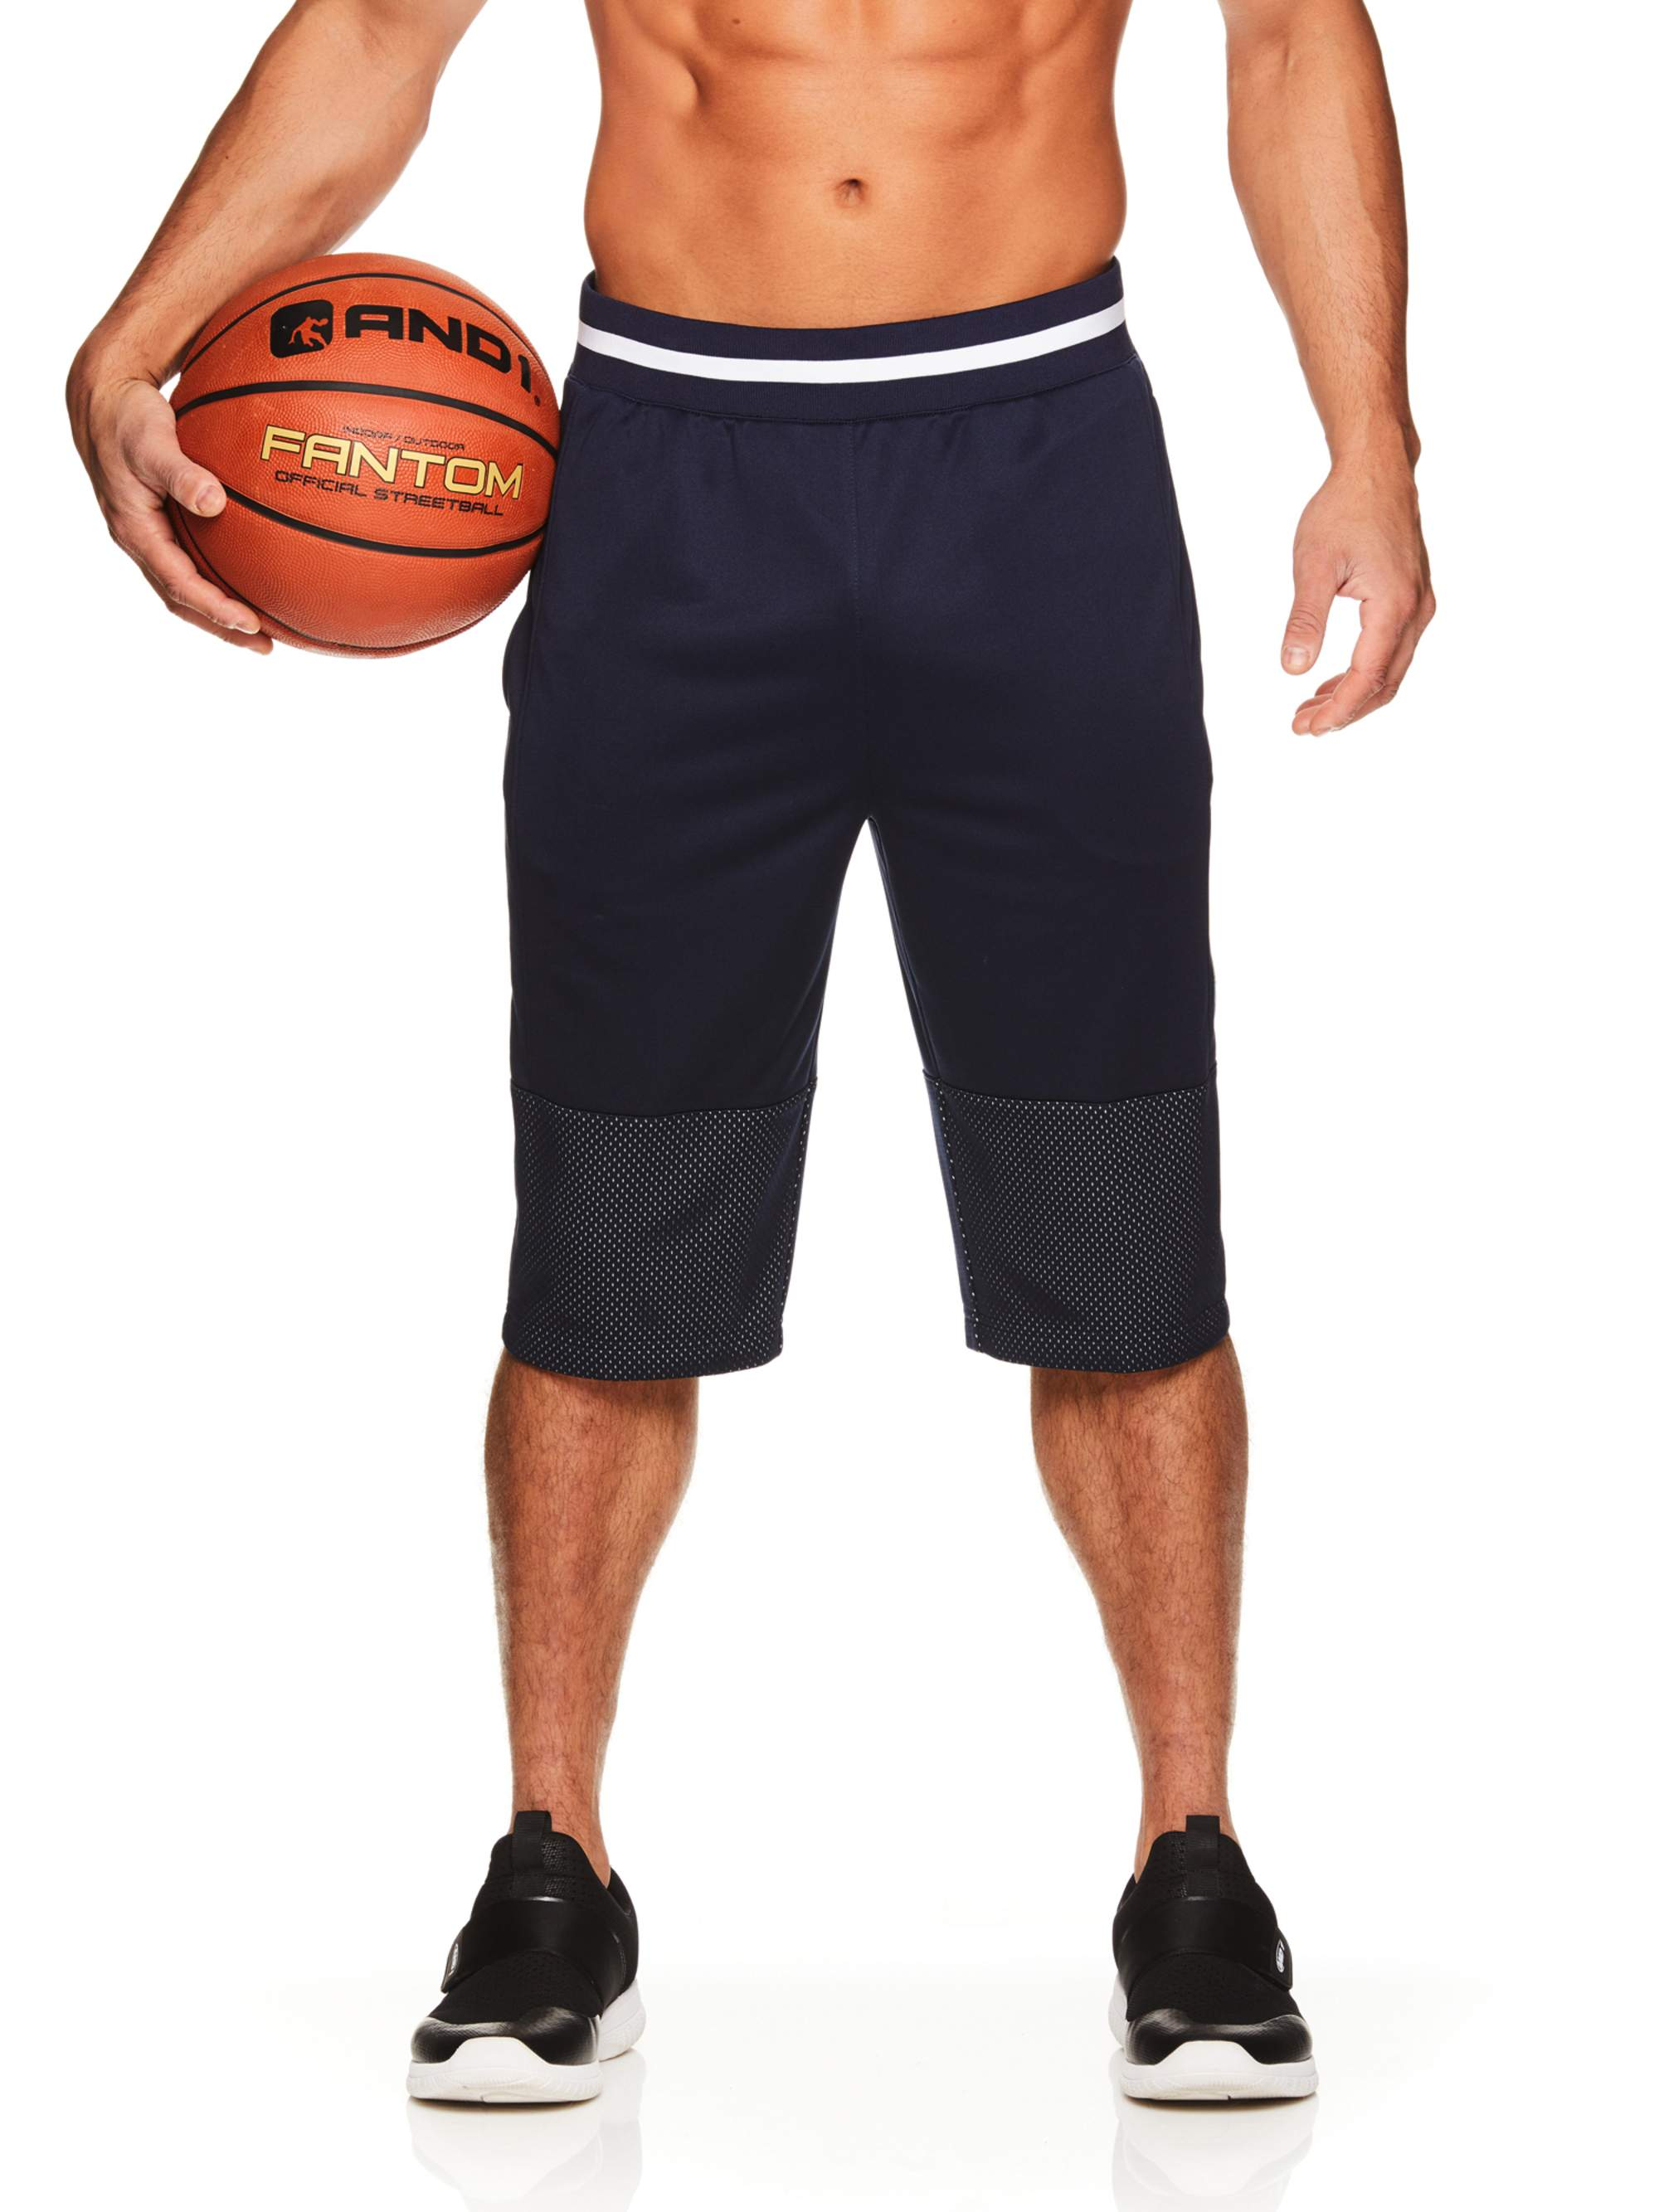 Tights & Leggings Basketball Tights Pants Athleisure TopTie 2 in 1 Mens Active Running Shorts